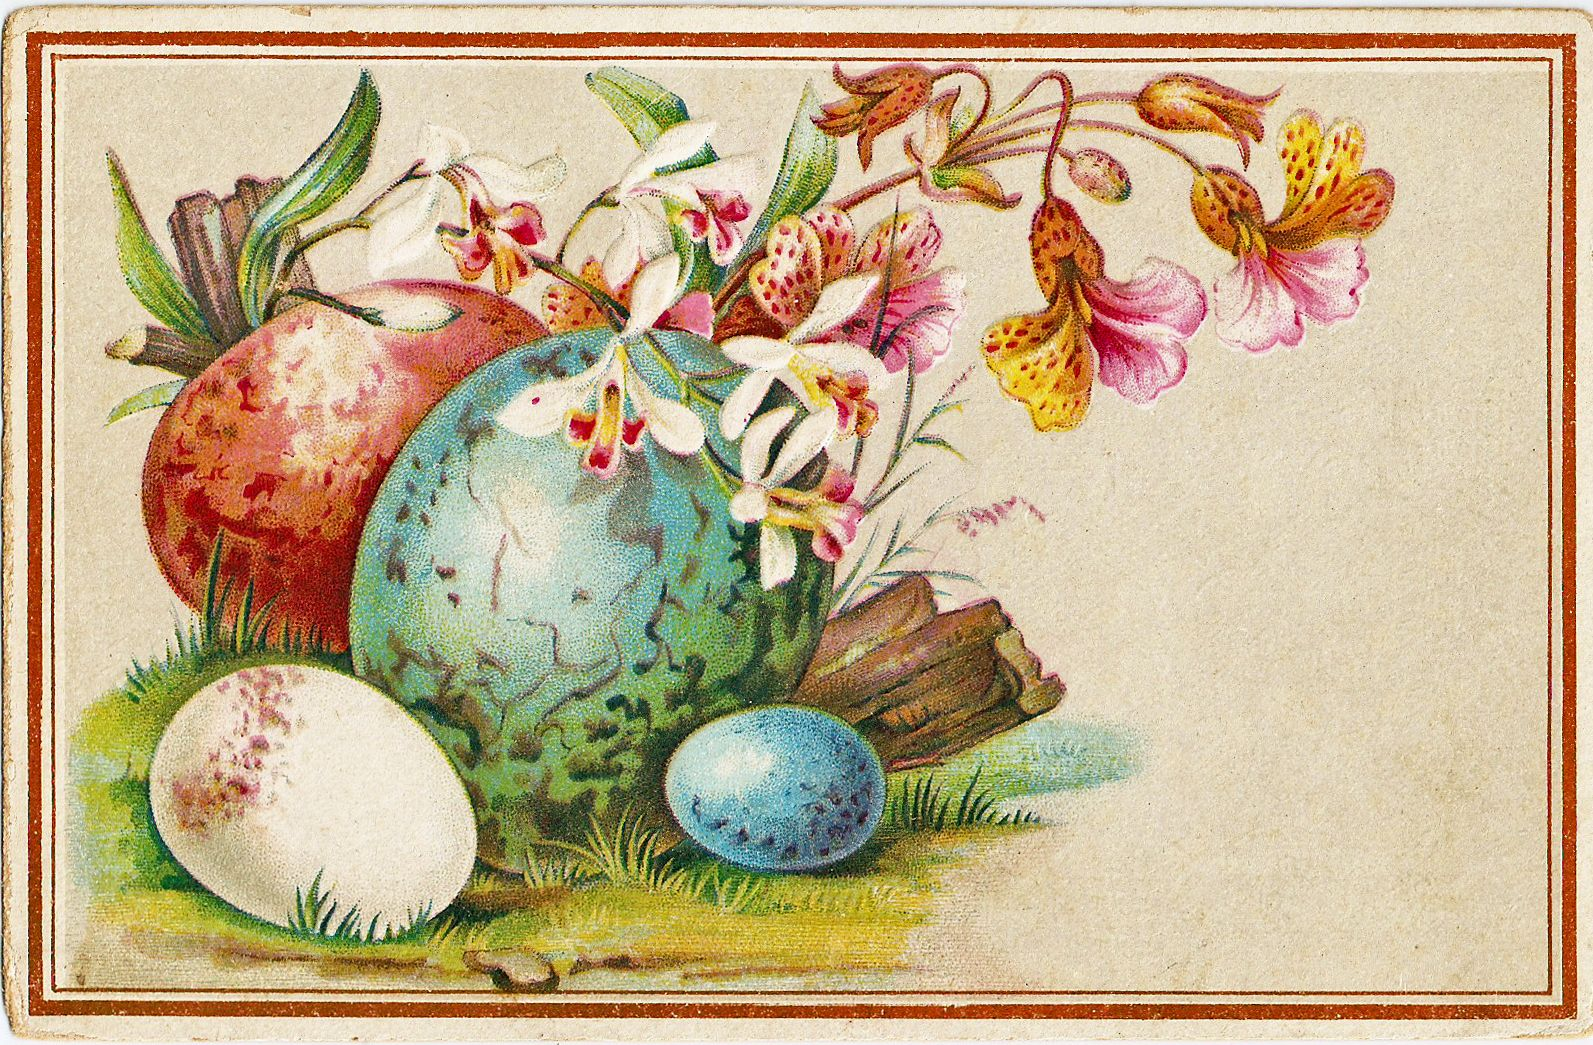 1000 Images About Easter On Pinterest Vintage Easter Easter Vintage Easter Postcards Vintage Easter Cards Clip Art Vintage